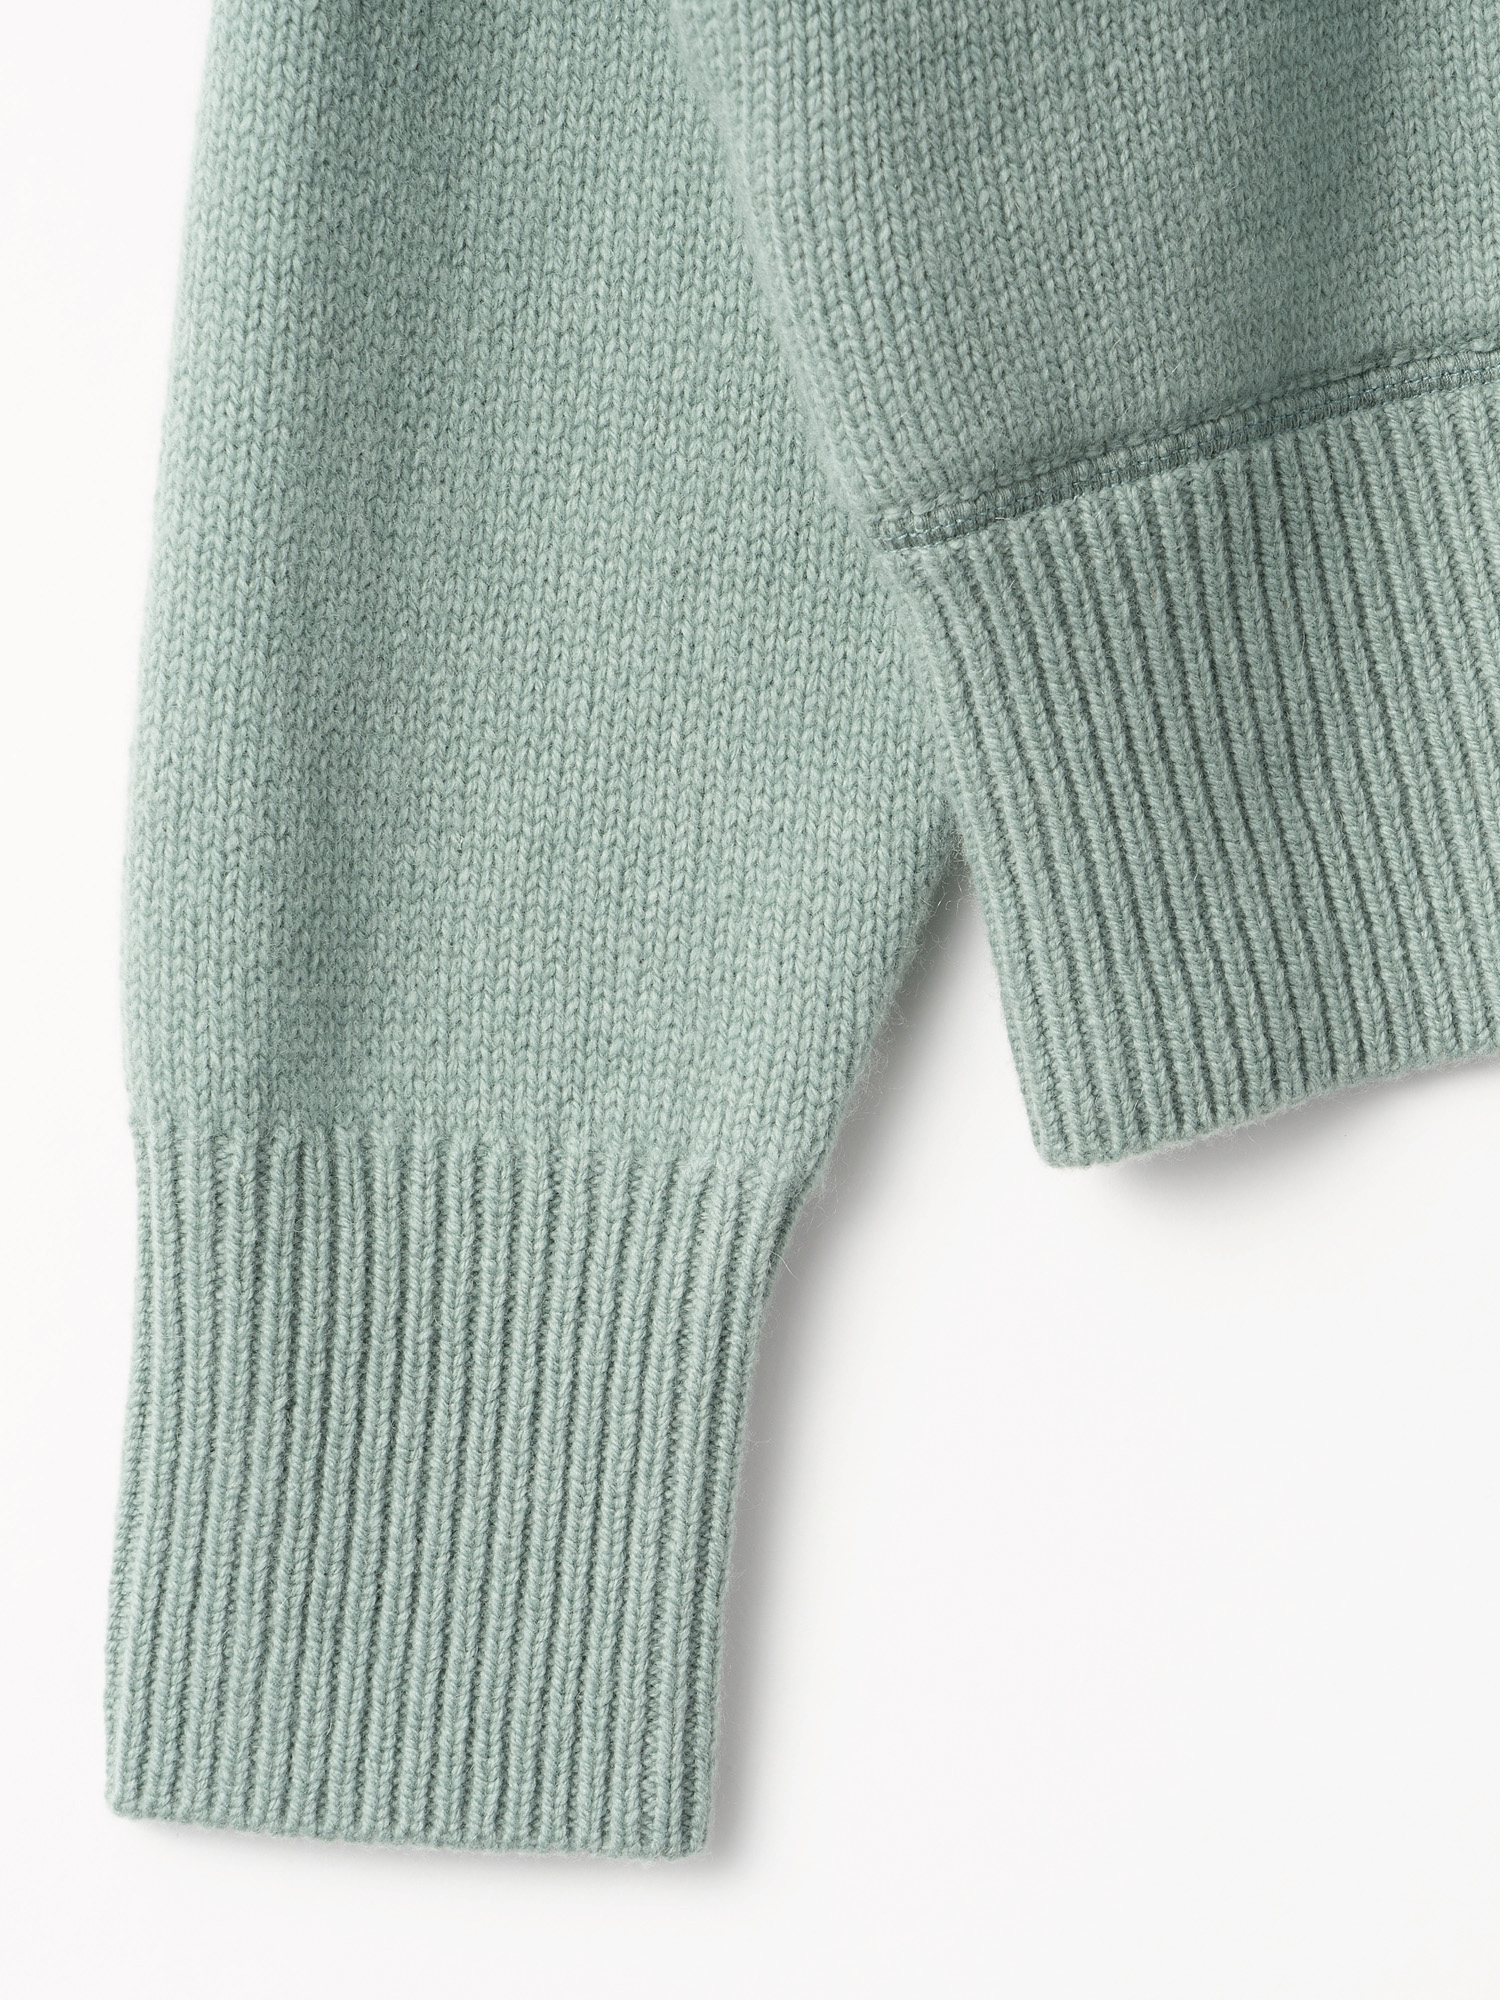 Knit Parkaのサムネイル7